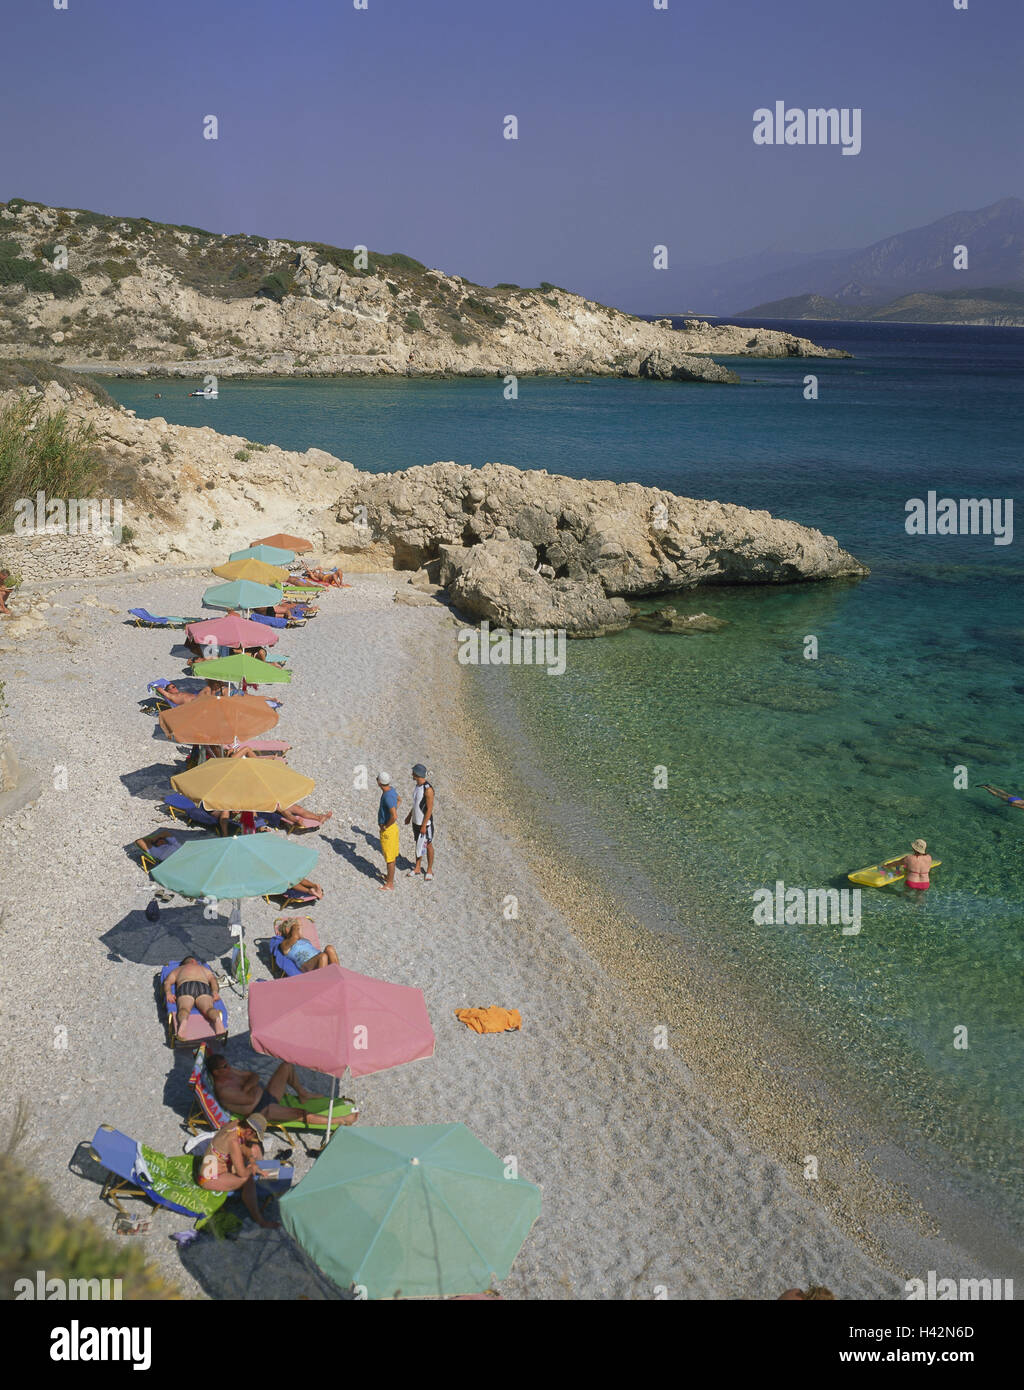 Greece, island Samos, Pythagorion, beach, Proteas Bay, bathers, Mediterranean island, bay, beach, bay, beach, person, Stock Photo